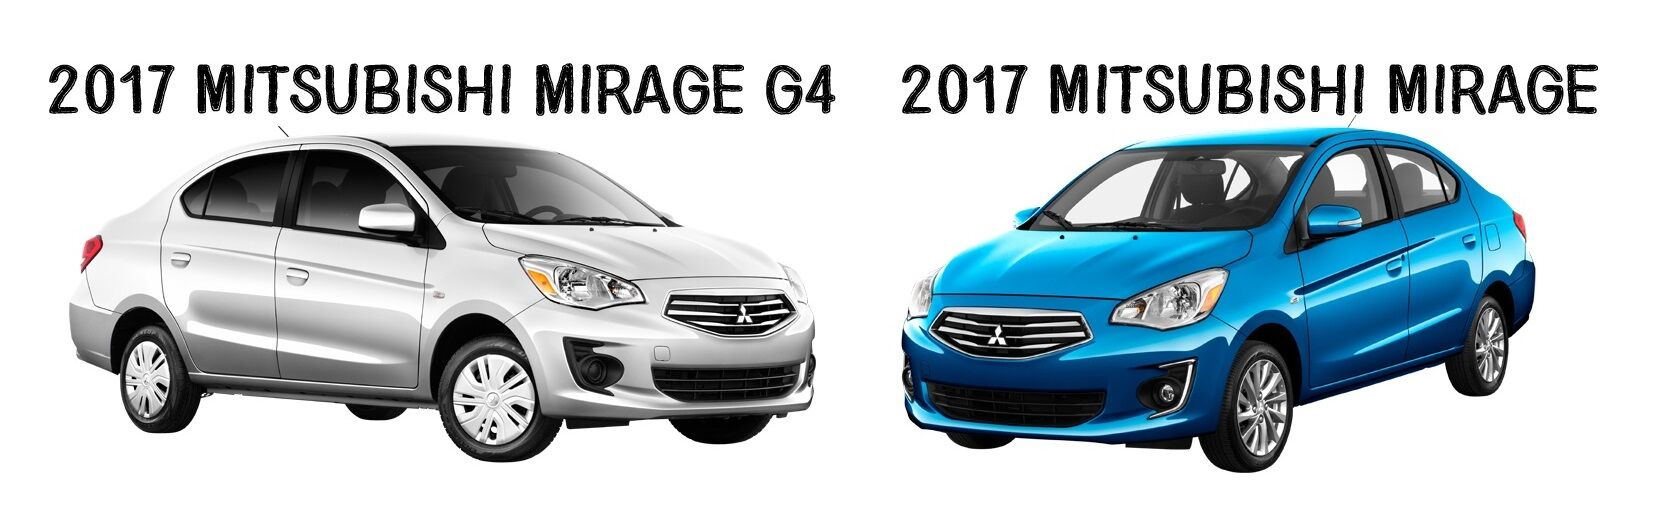 2017 Mitsubishi Mirage and Mirage G4